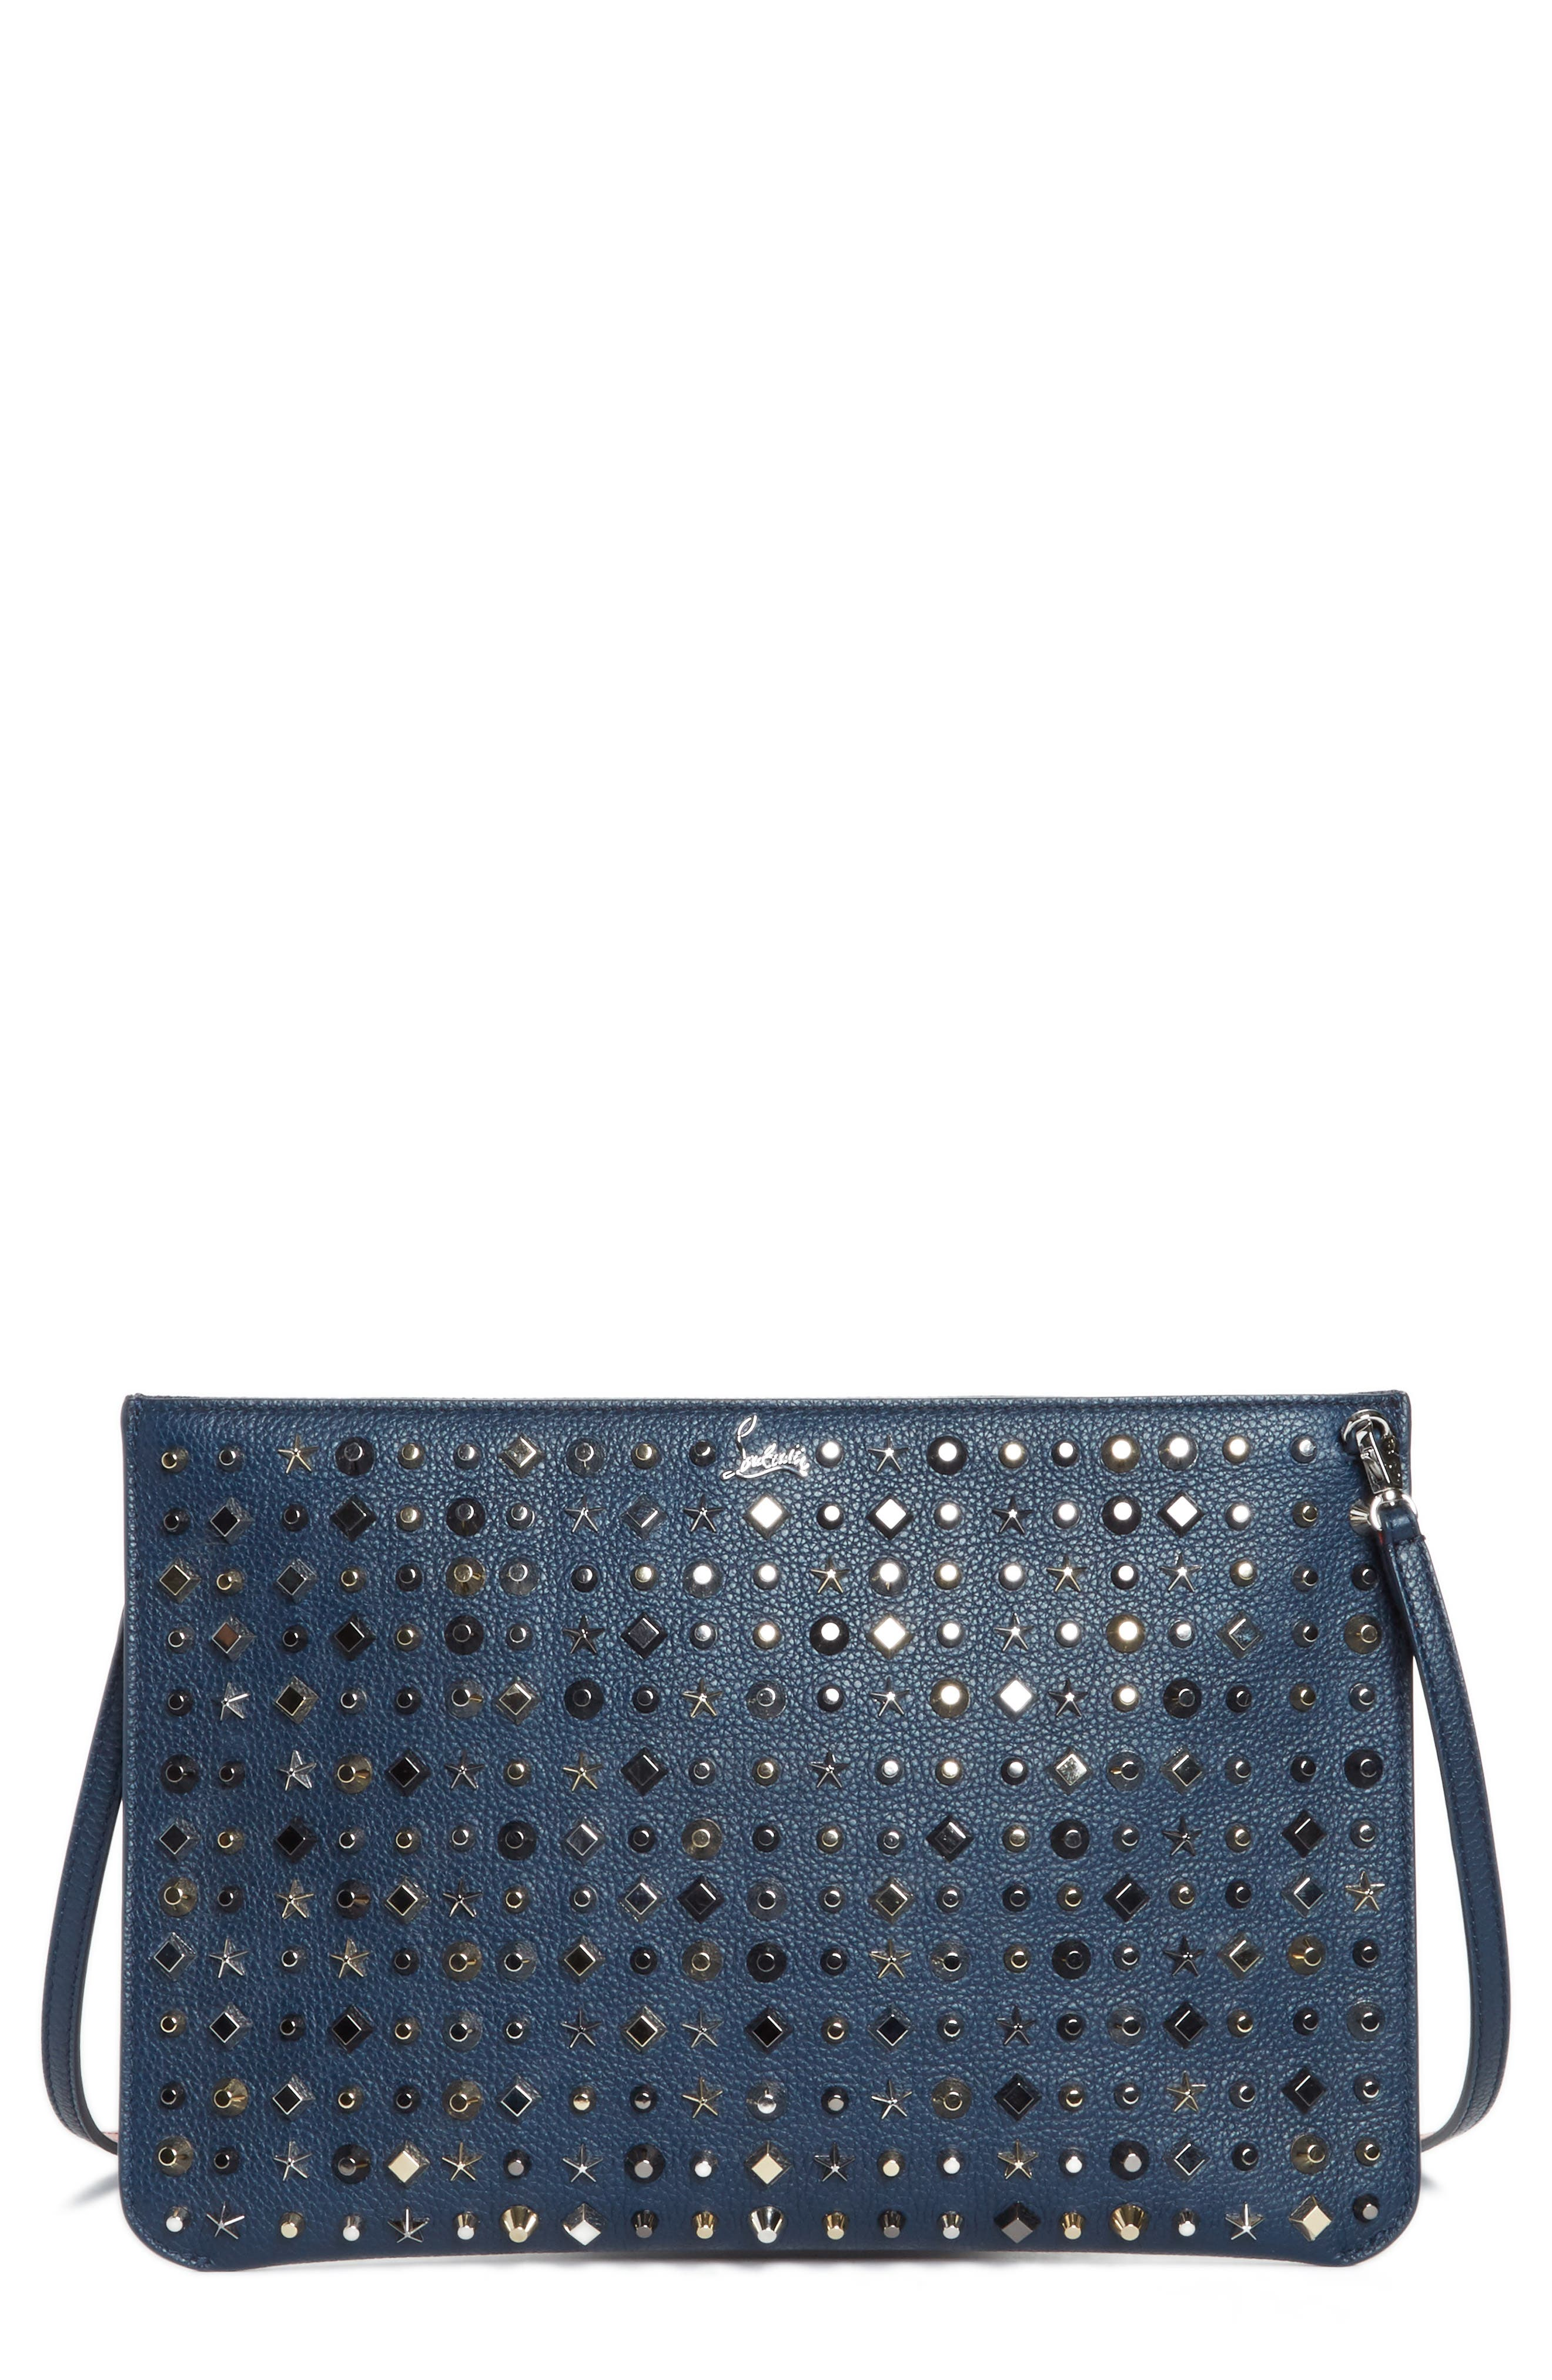 Loubiclutch Spiked Leather Clutch,                         Main,                         color, 419